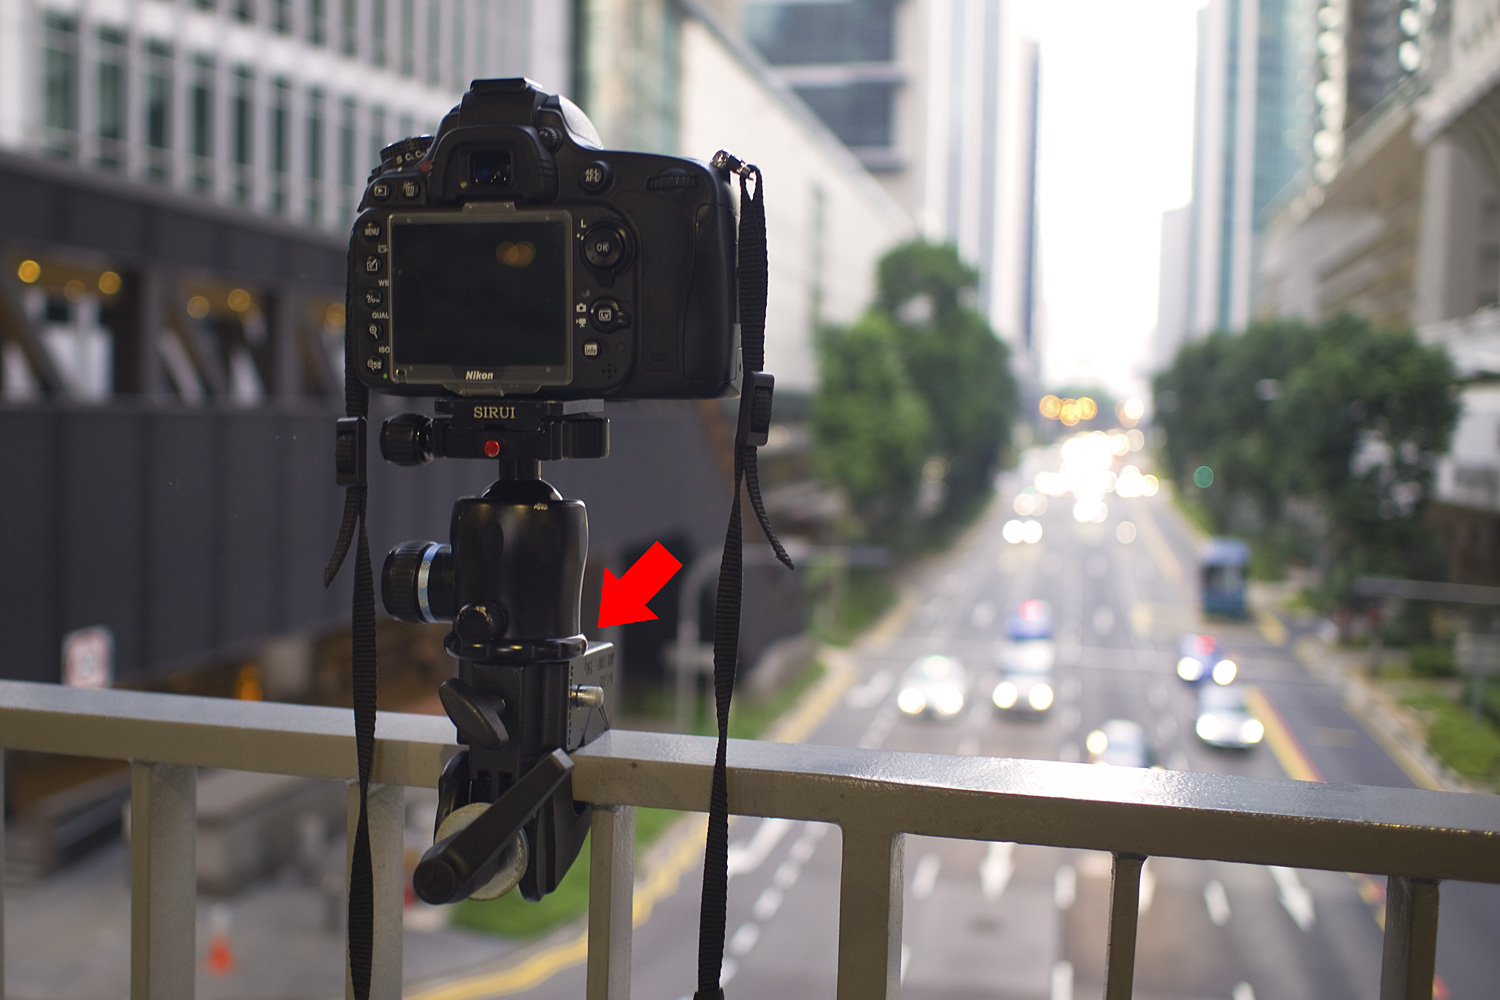 Image: With the short stud used, a tripod head sits flush with the Super Clamp. This setup can be as...